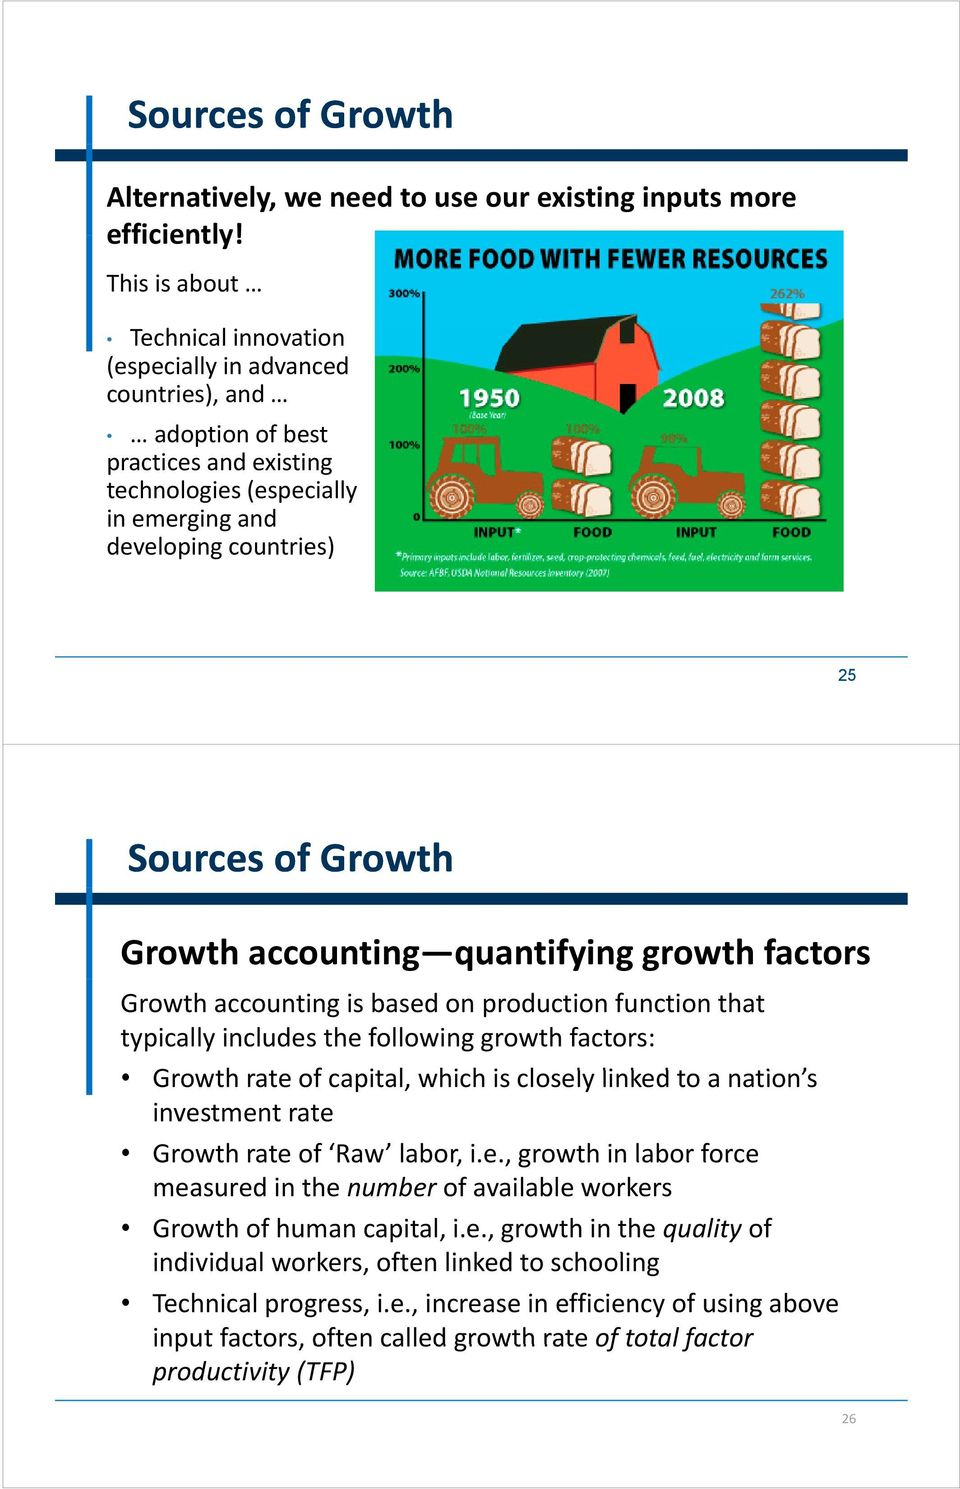 Growth accounting quantifying growth factors Growth accounting is based on production function that typically includes the following growth factors: Growth rate of capital, which his closely l linked